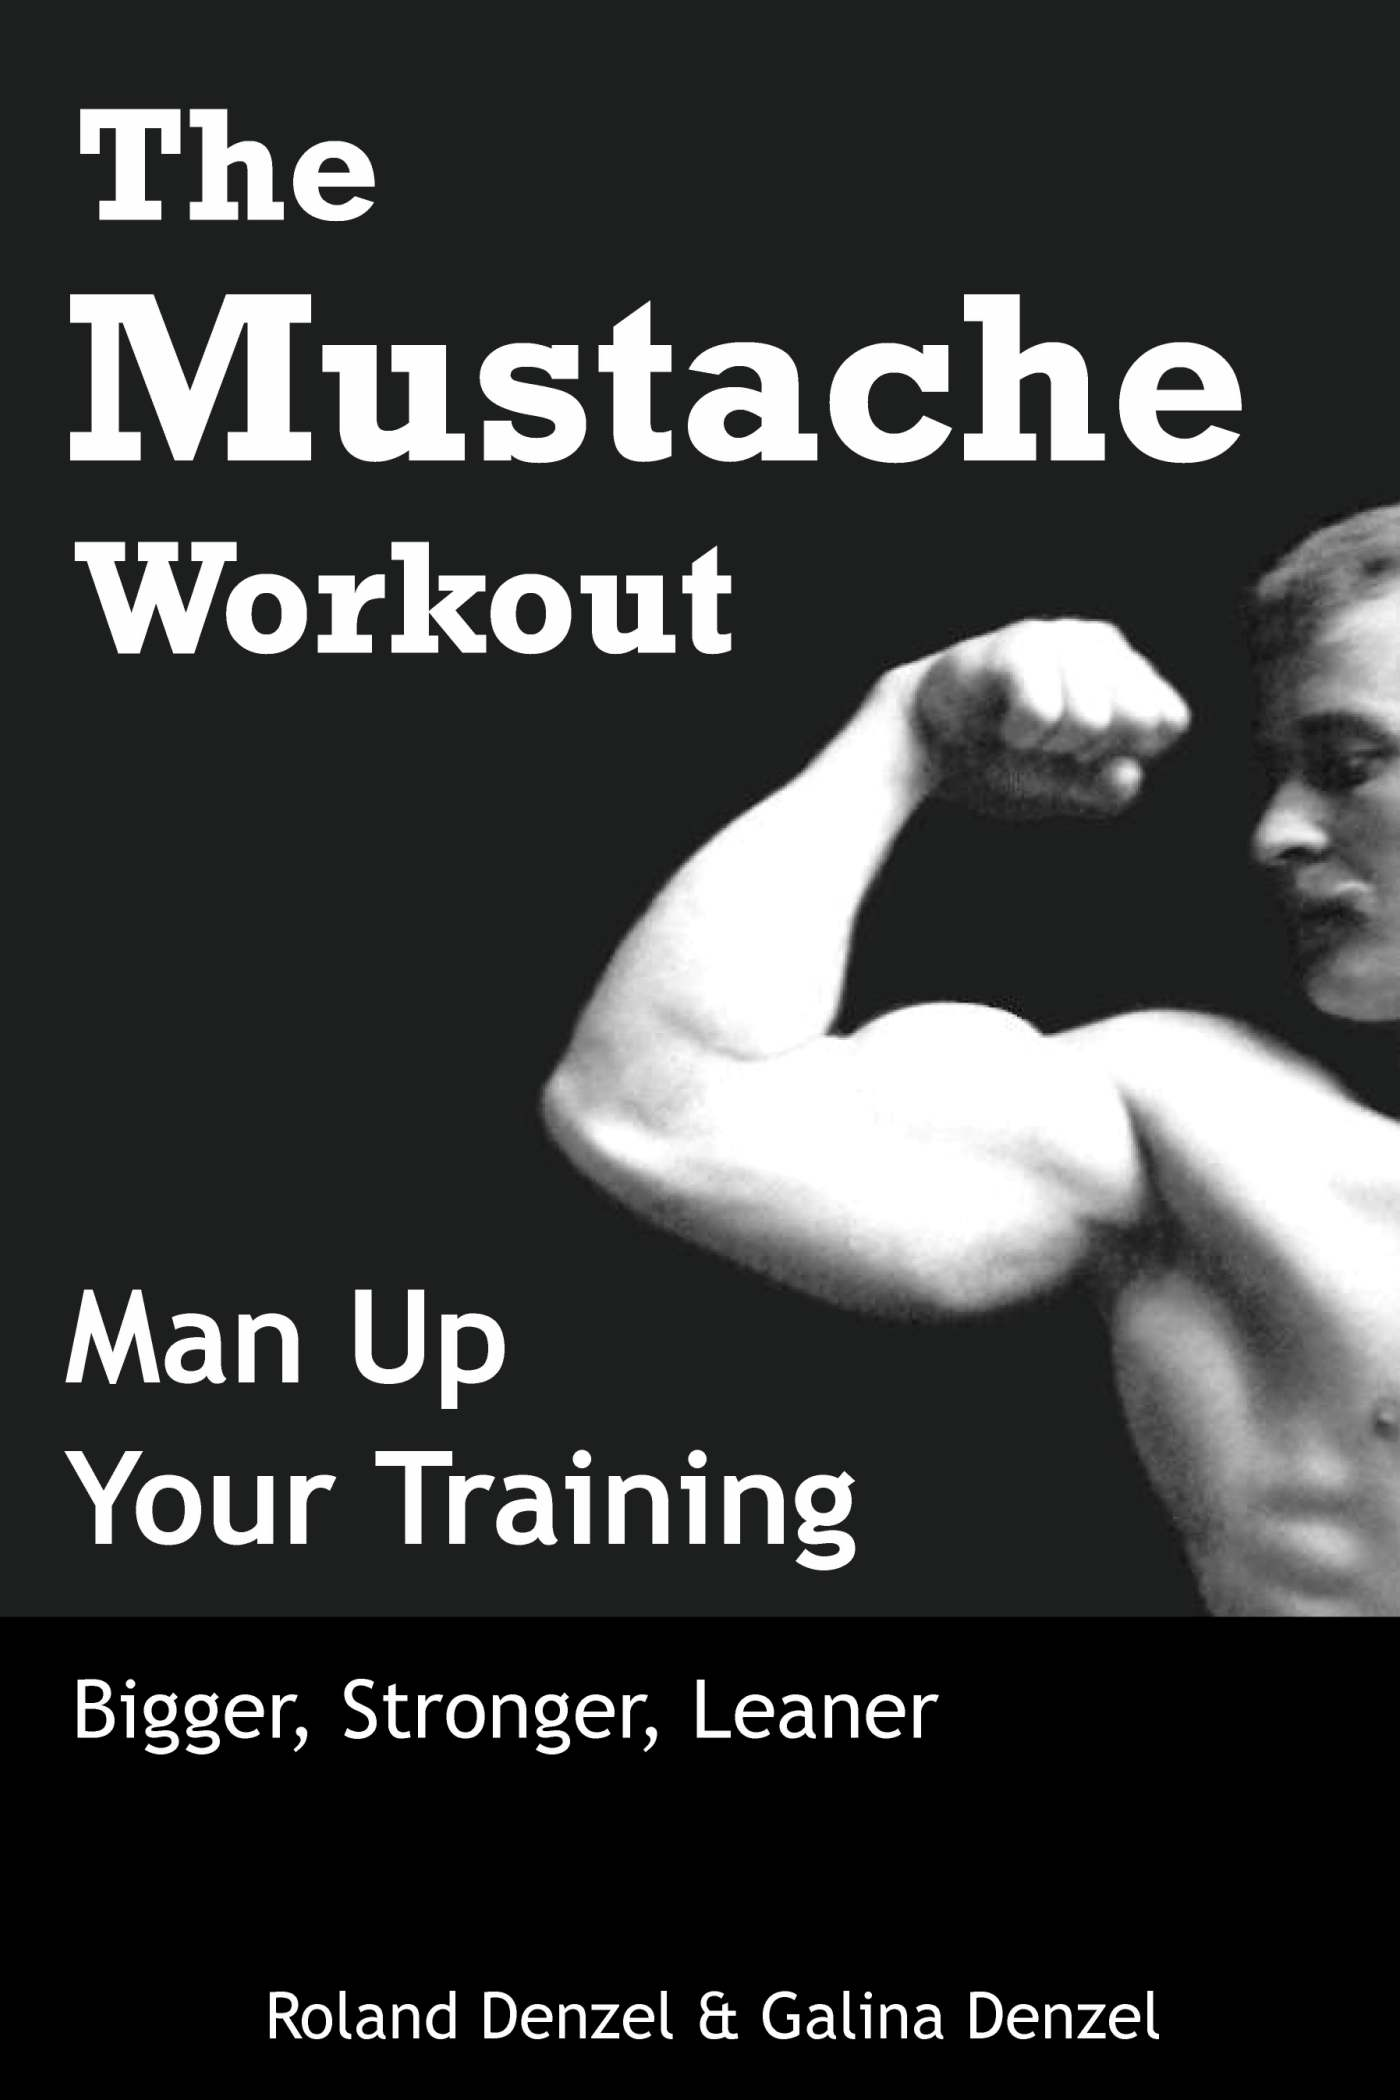 Bigger • Stronger • Leaner • Time tested training inspired by old time strongmen!